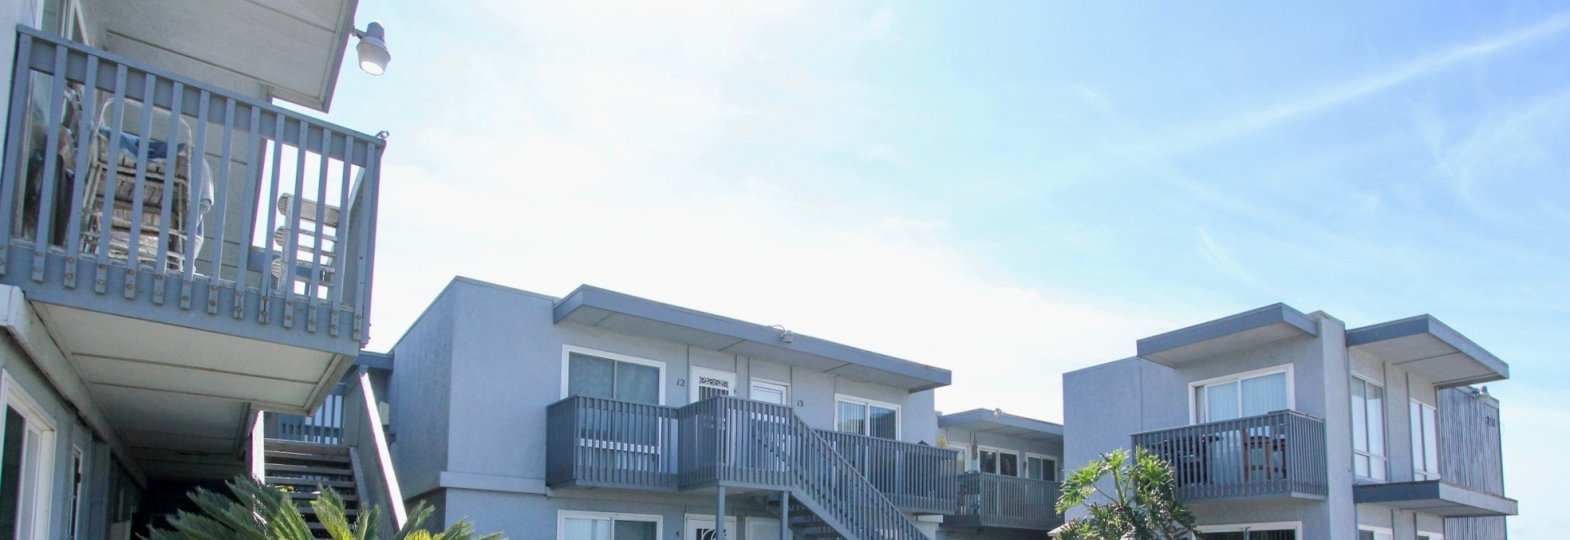 Private balconies at Spray in Ocean Beach, California.